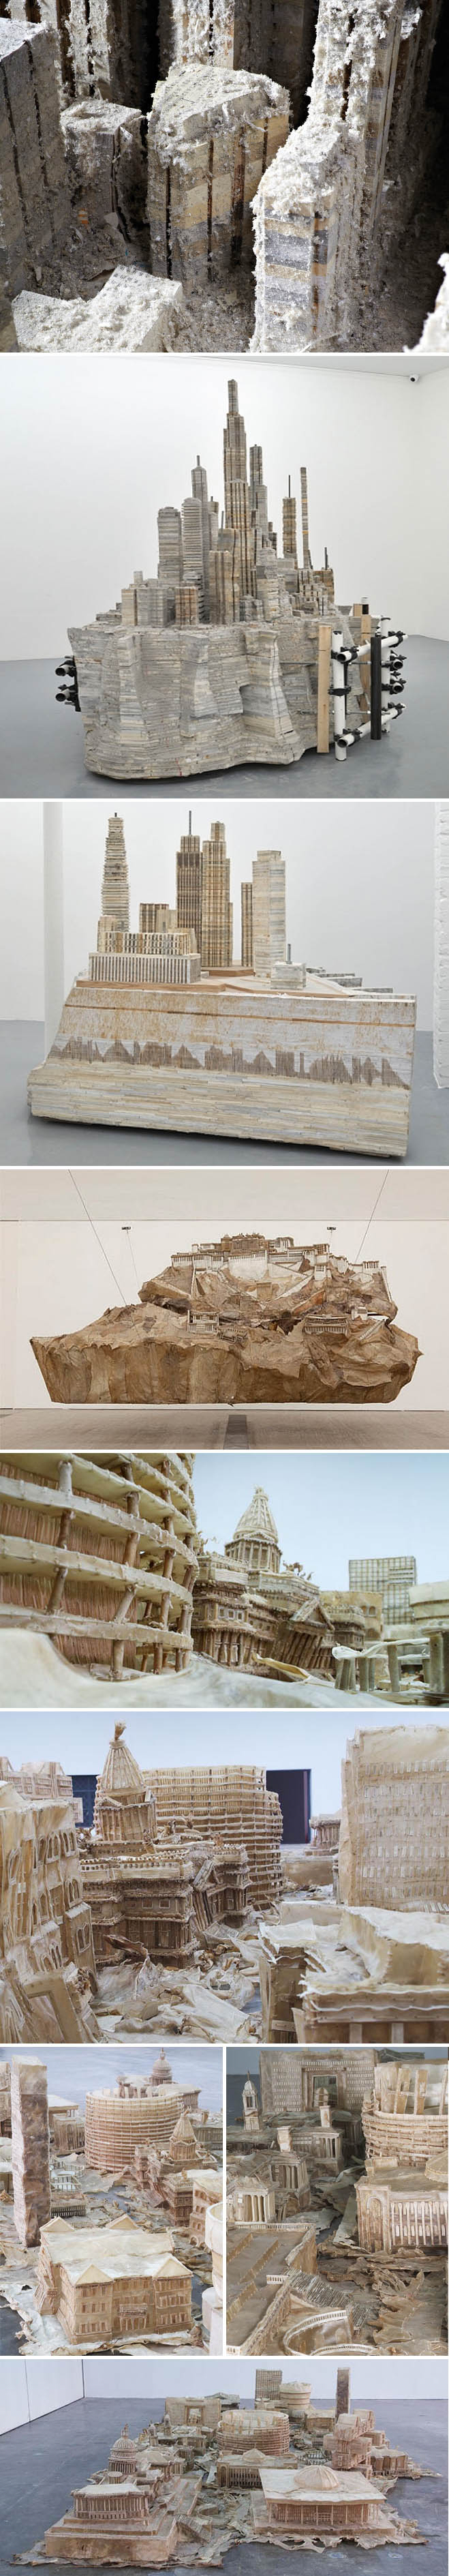 sculptures of cities made from books, steel and wood, dog chews, Foreign, Almine Rech Gallery, Liu Wei